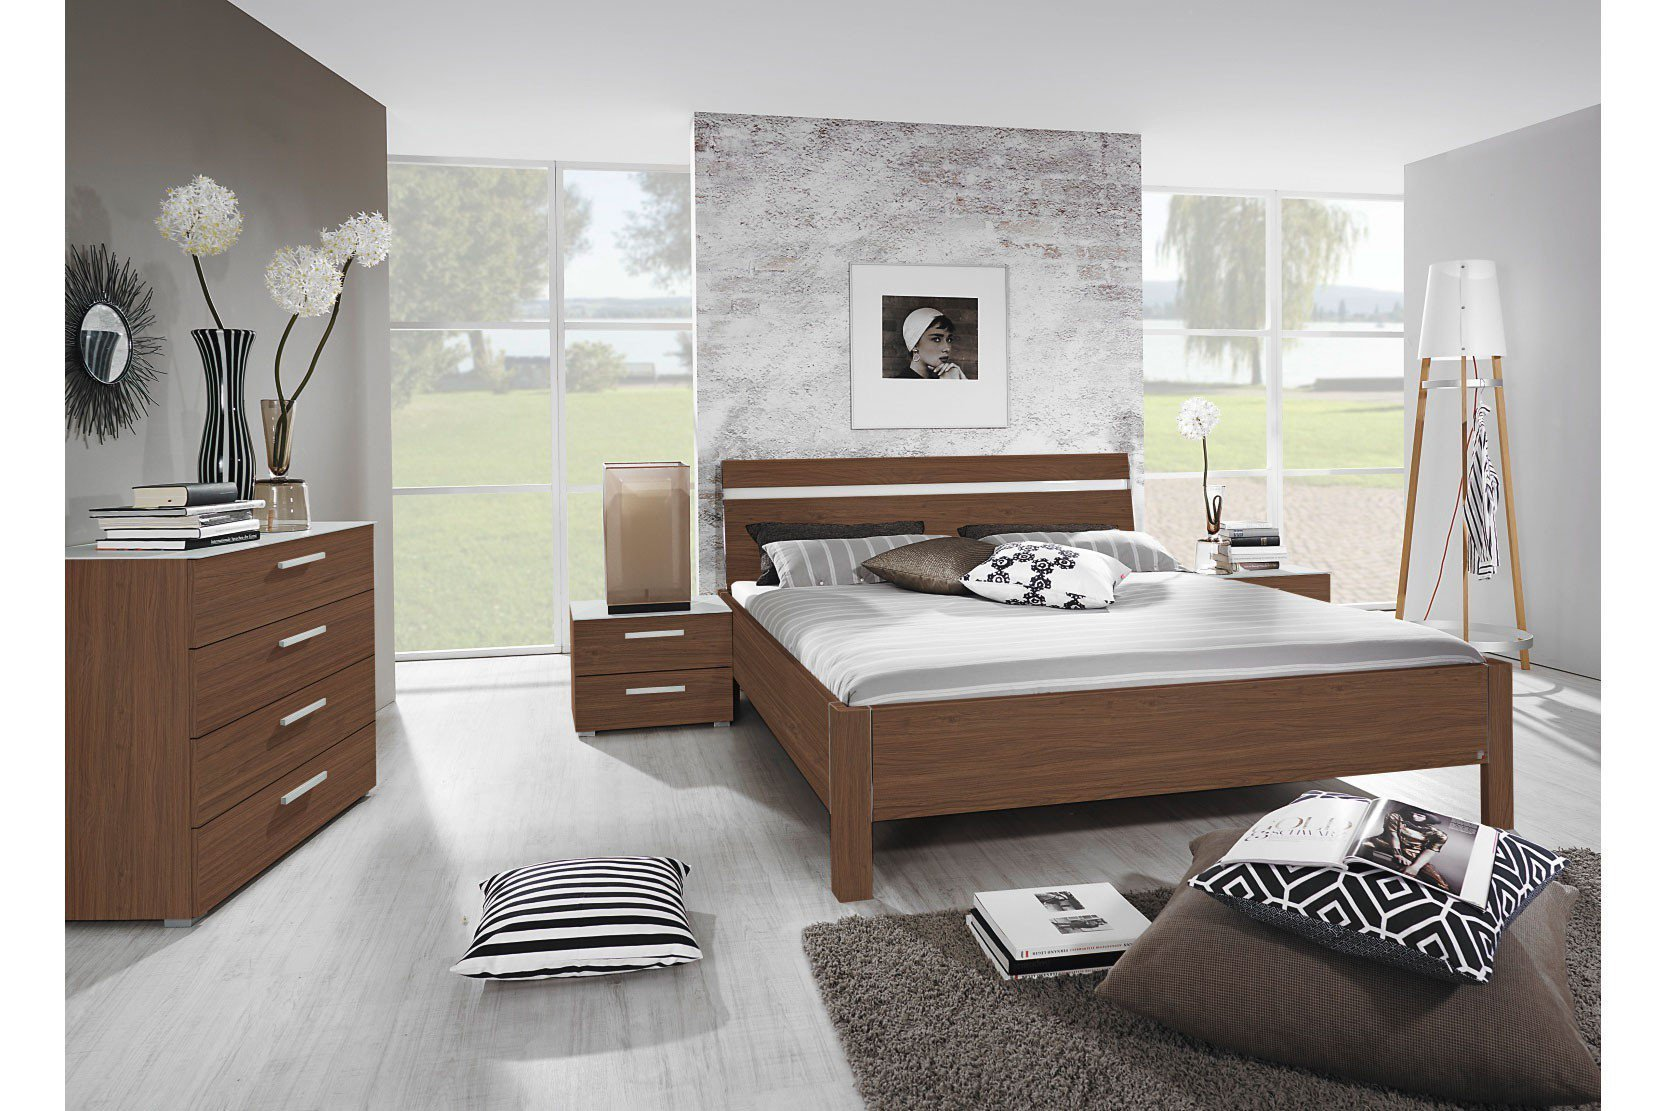 rauch dialog bett nussbaum 160 x 200 cm m bel letz ihr online shop. Black Bedroom Furniture Sets. Home Design Ideas